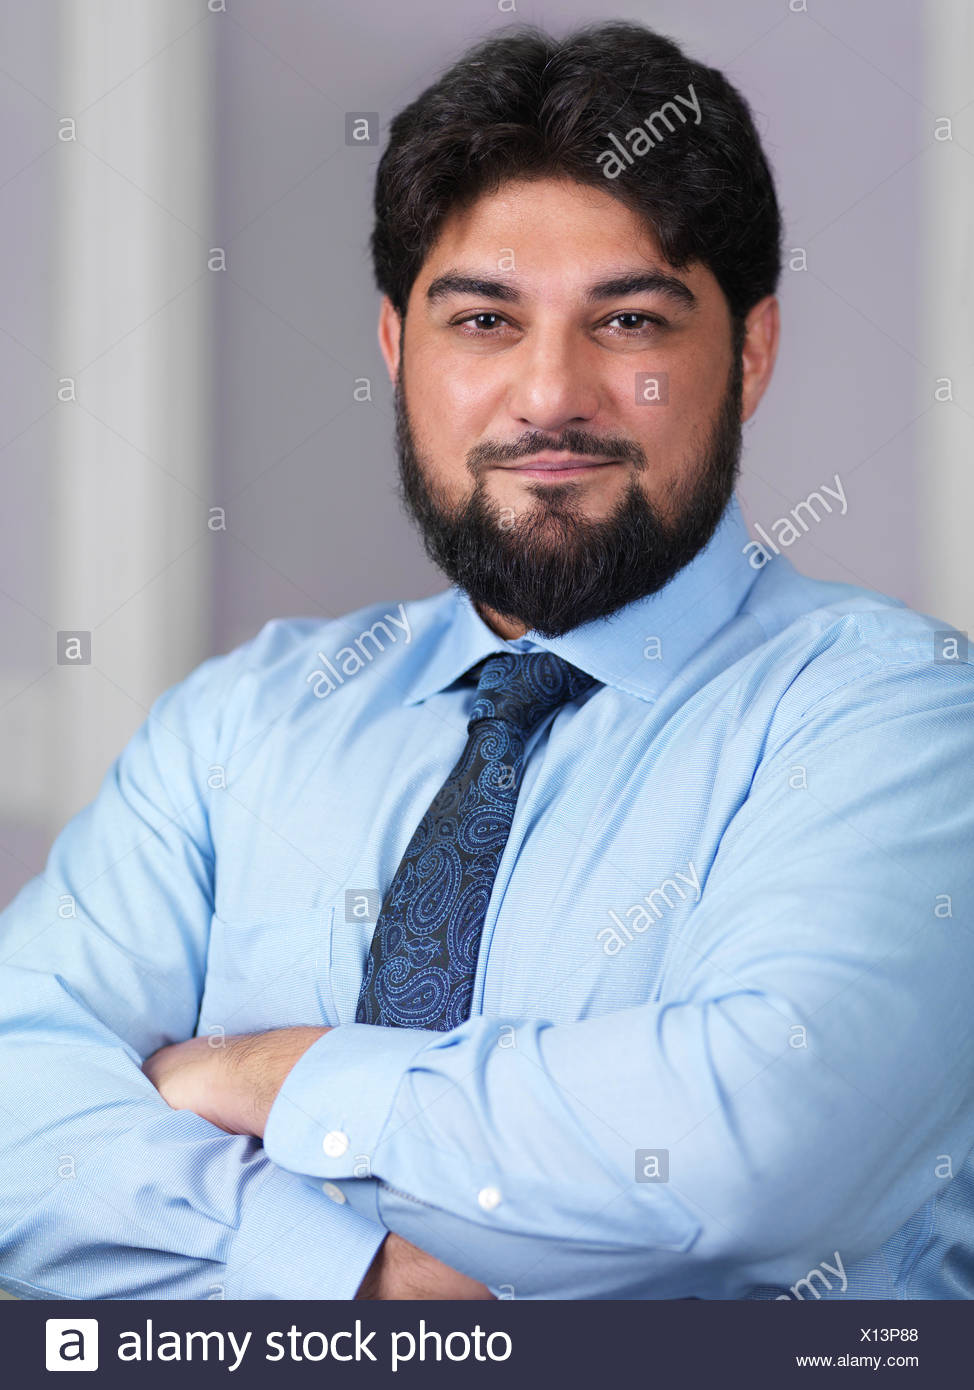 Portrait of a smiling businessman in his thirties - Stock Image